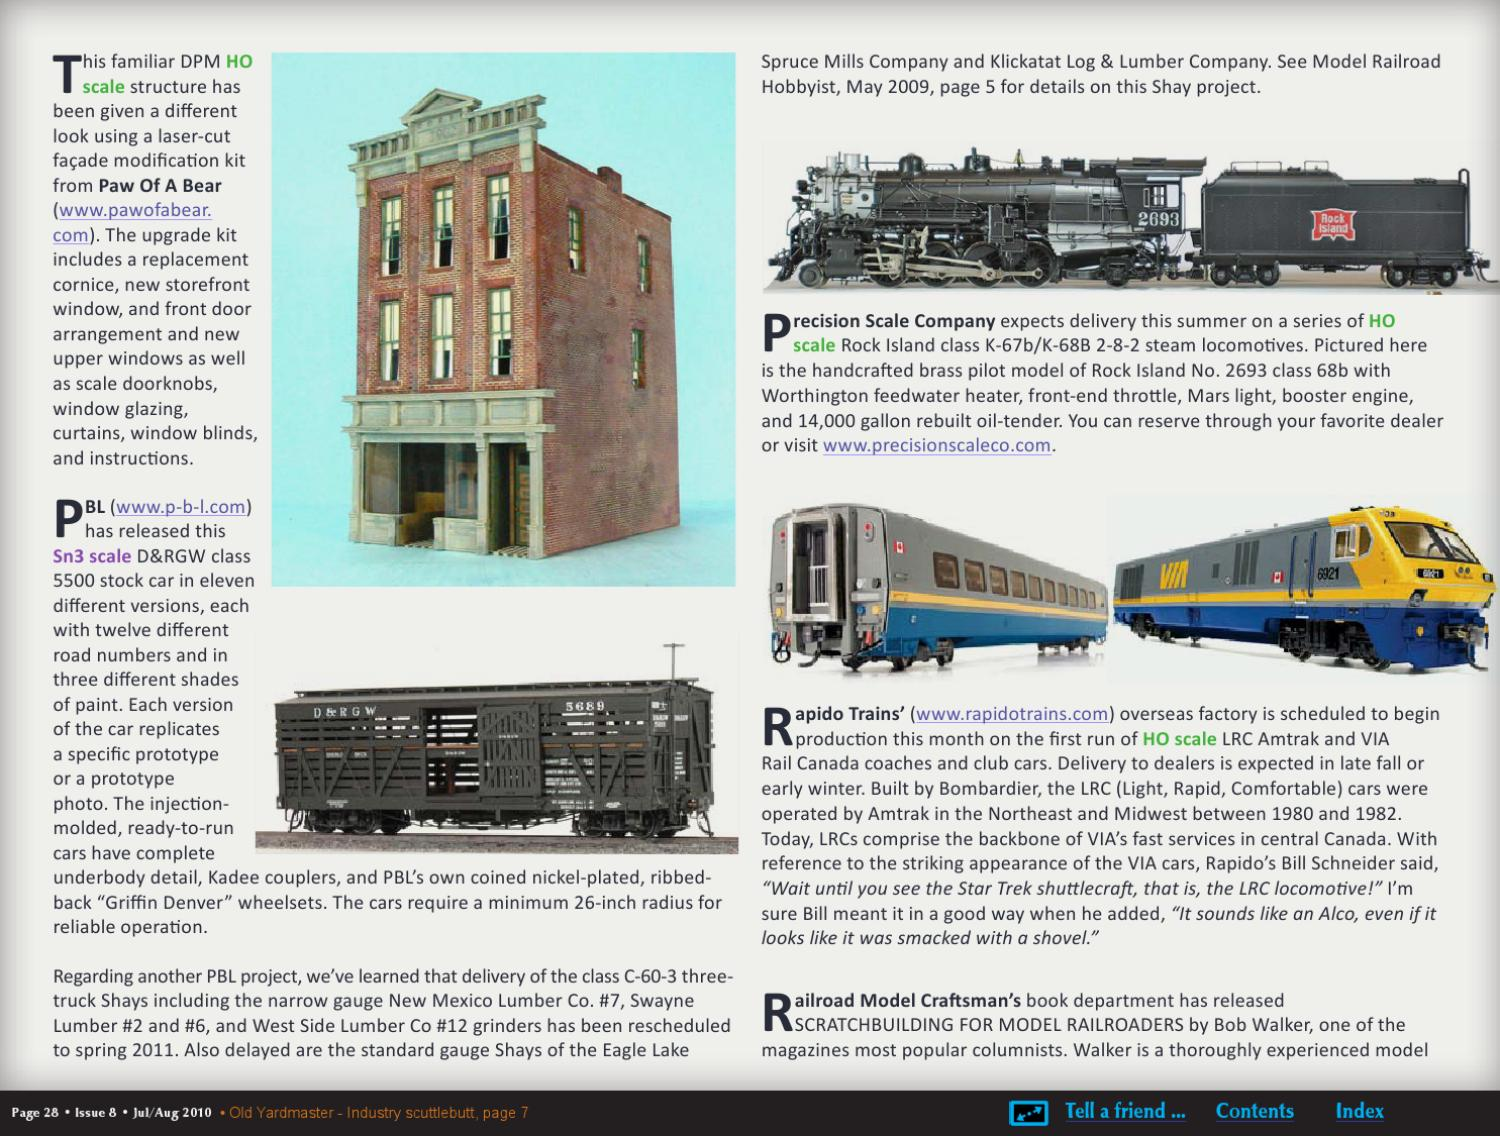 MRH Jul/Aug 2010 - Issue 8 by Model Railroad Hobbyist